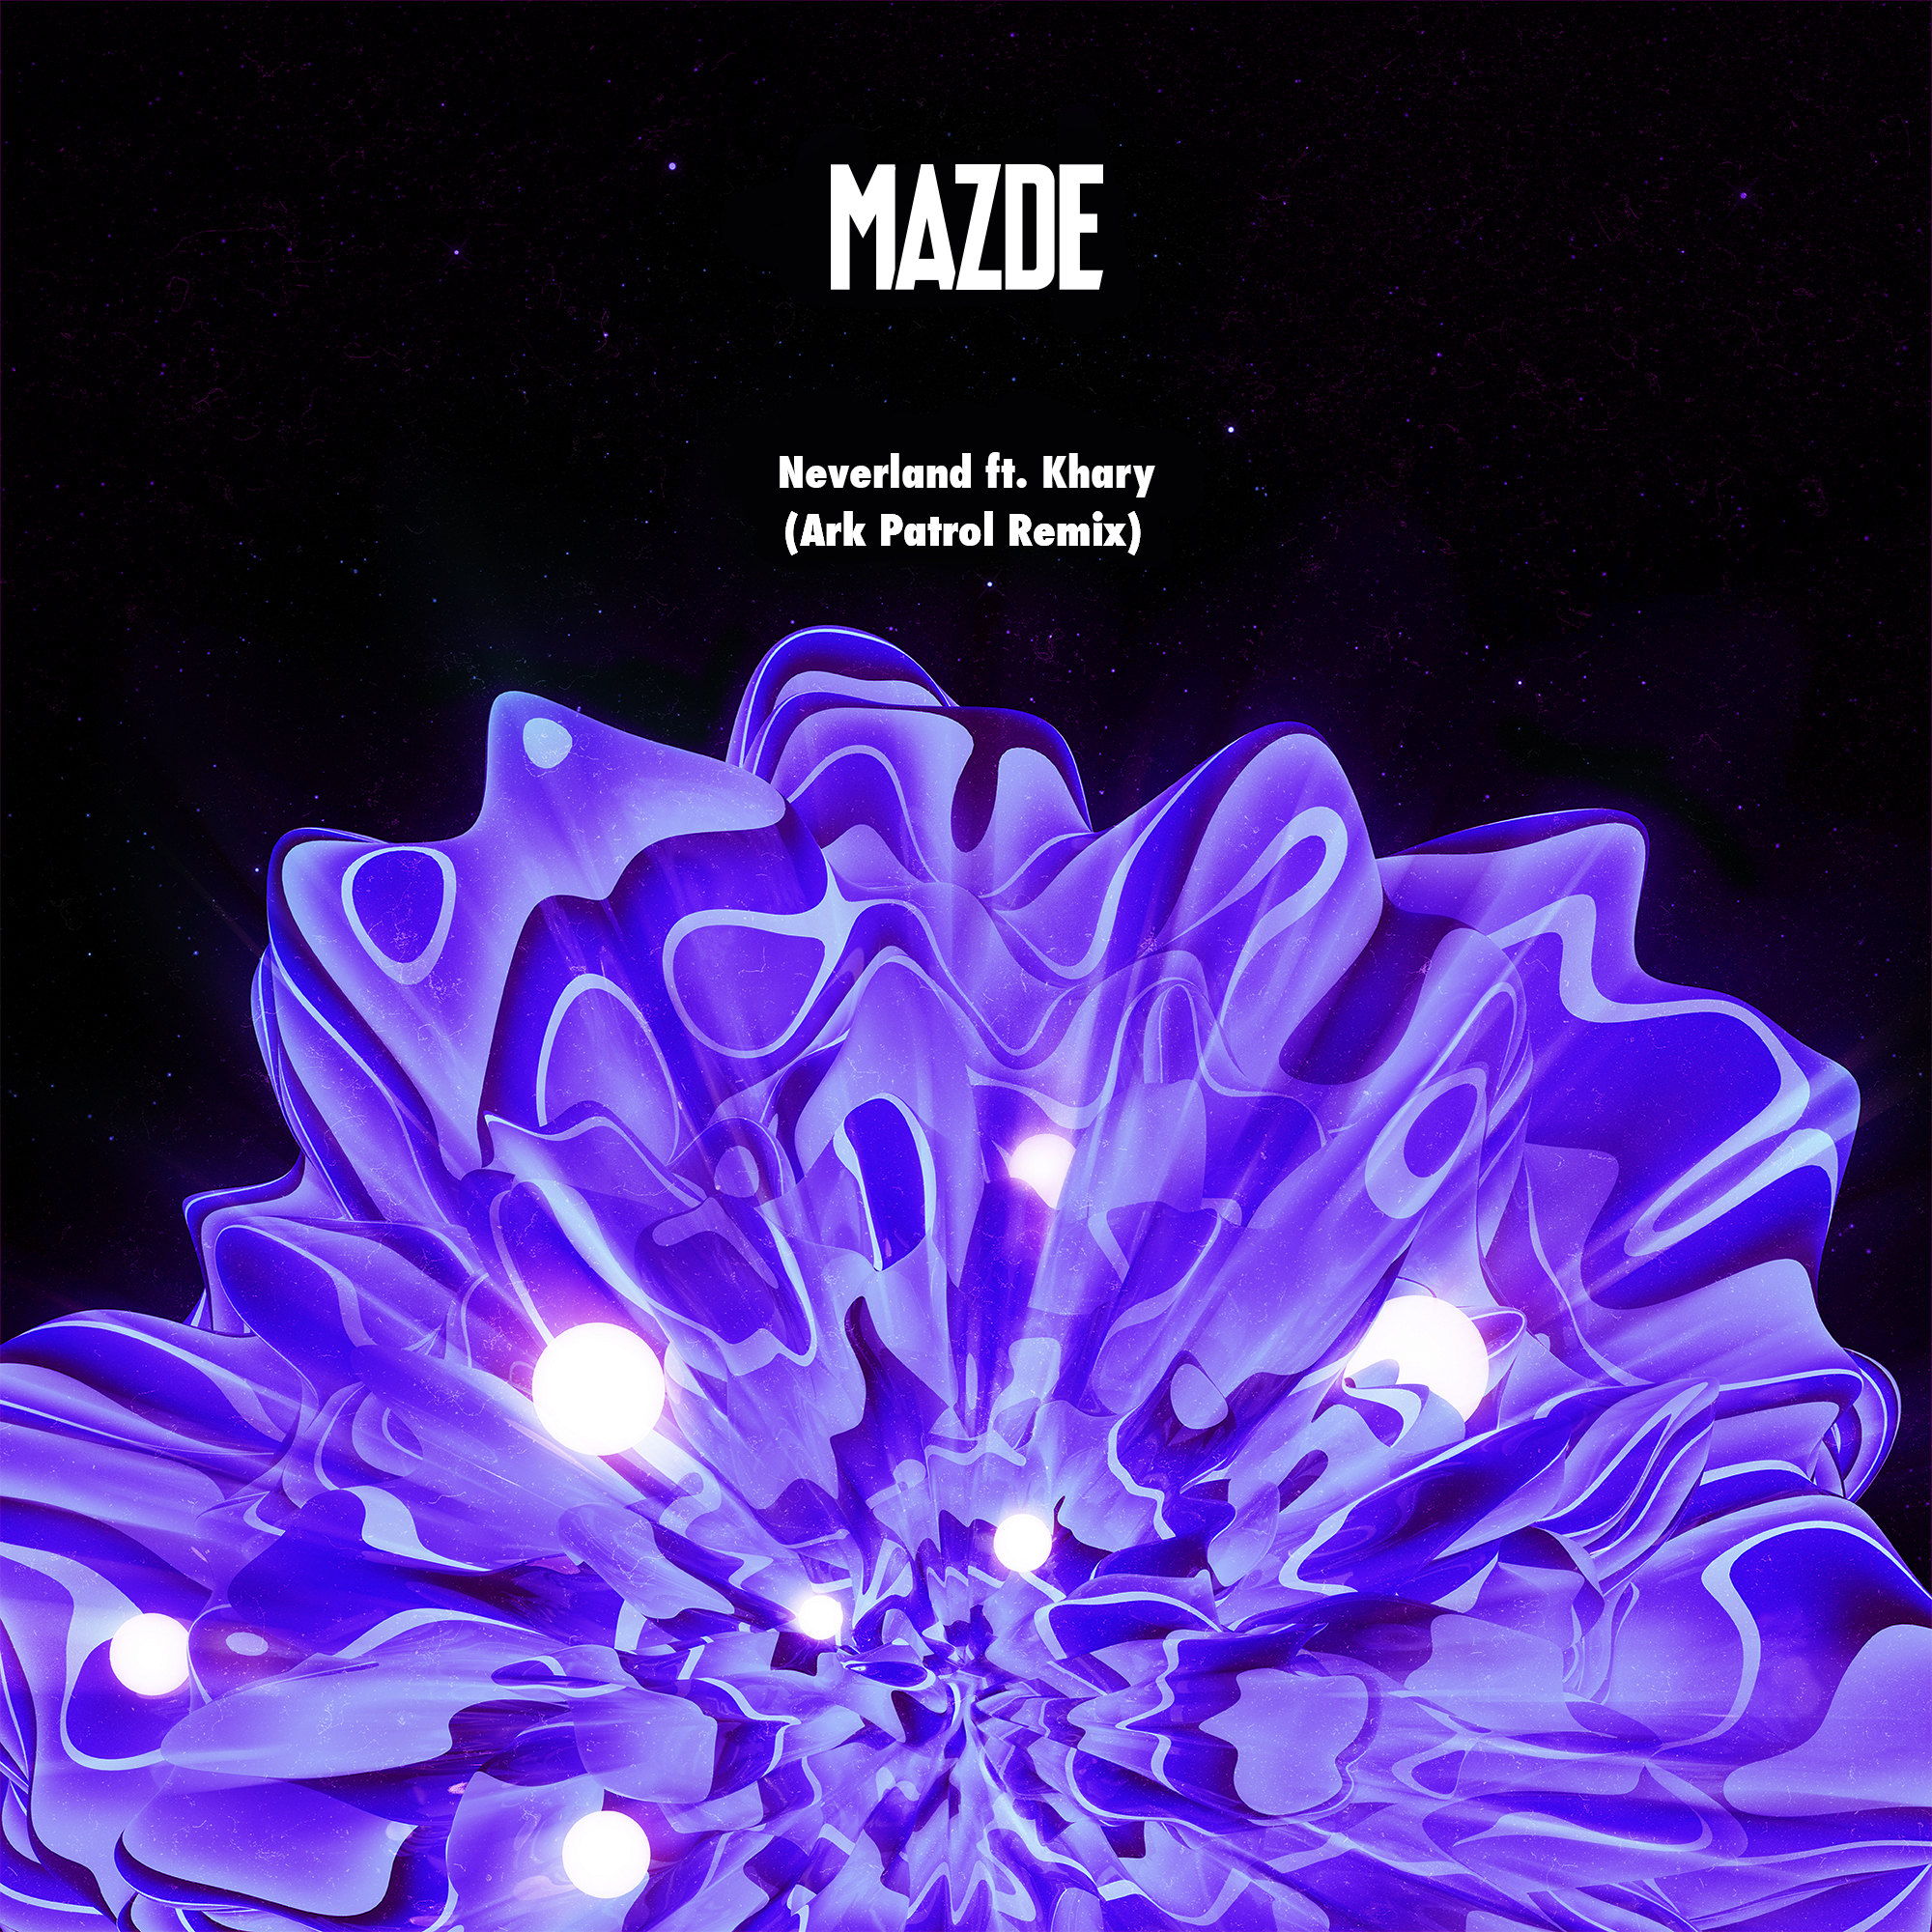 Mazde - Neverland ft. Khary (Ark Patrol Remix)